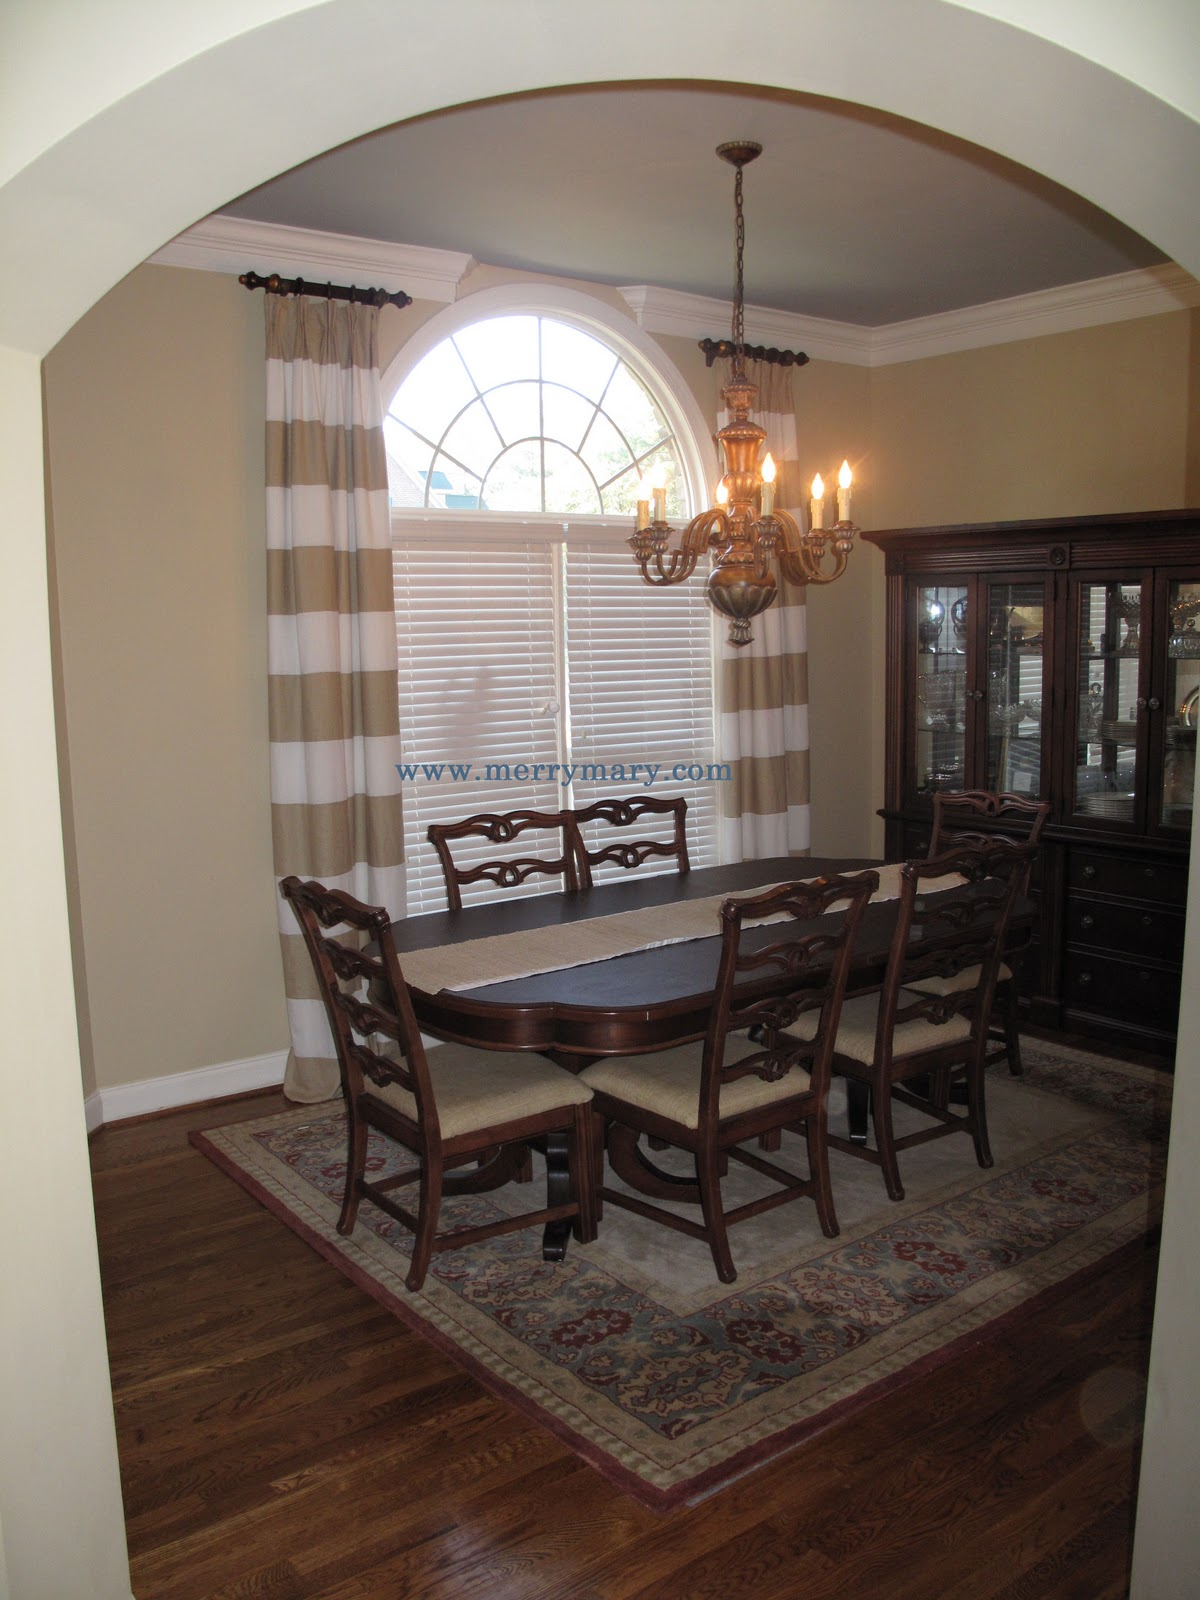 Horizontal Striped Curtains matched with arch window with chandelier and dining table for dining room ideas